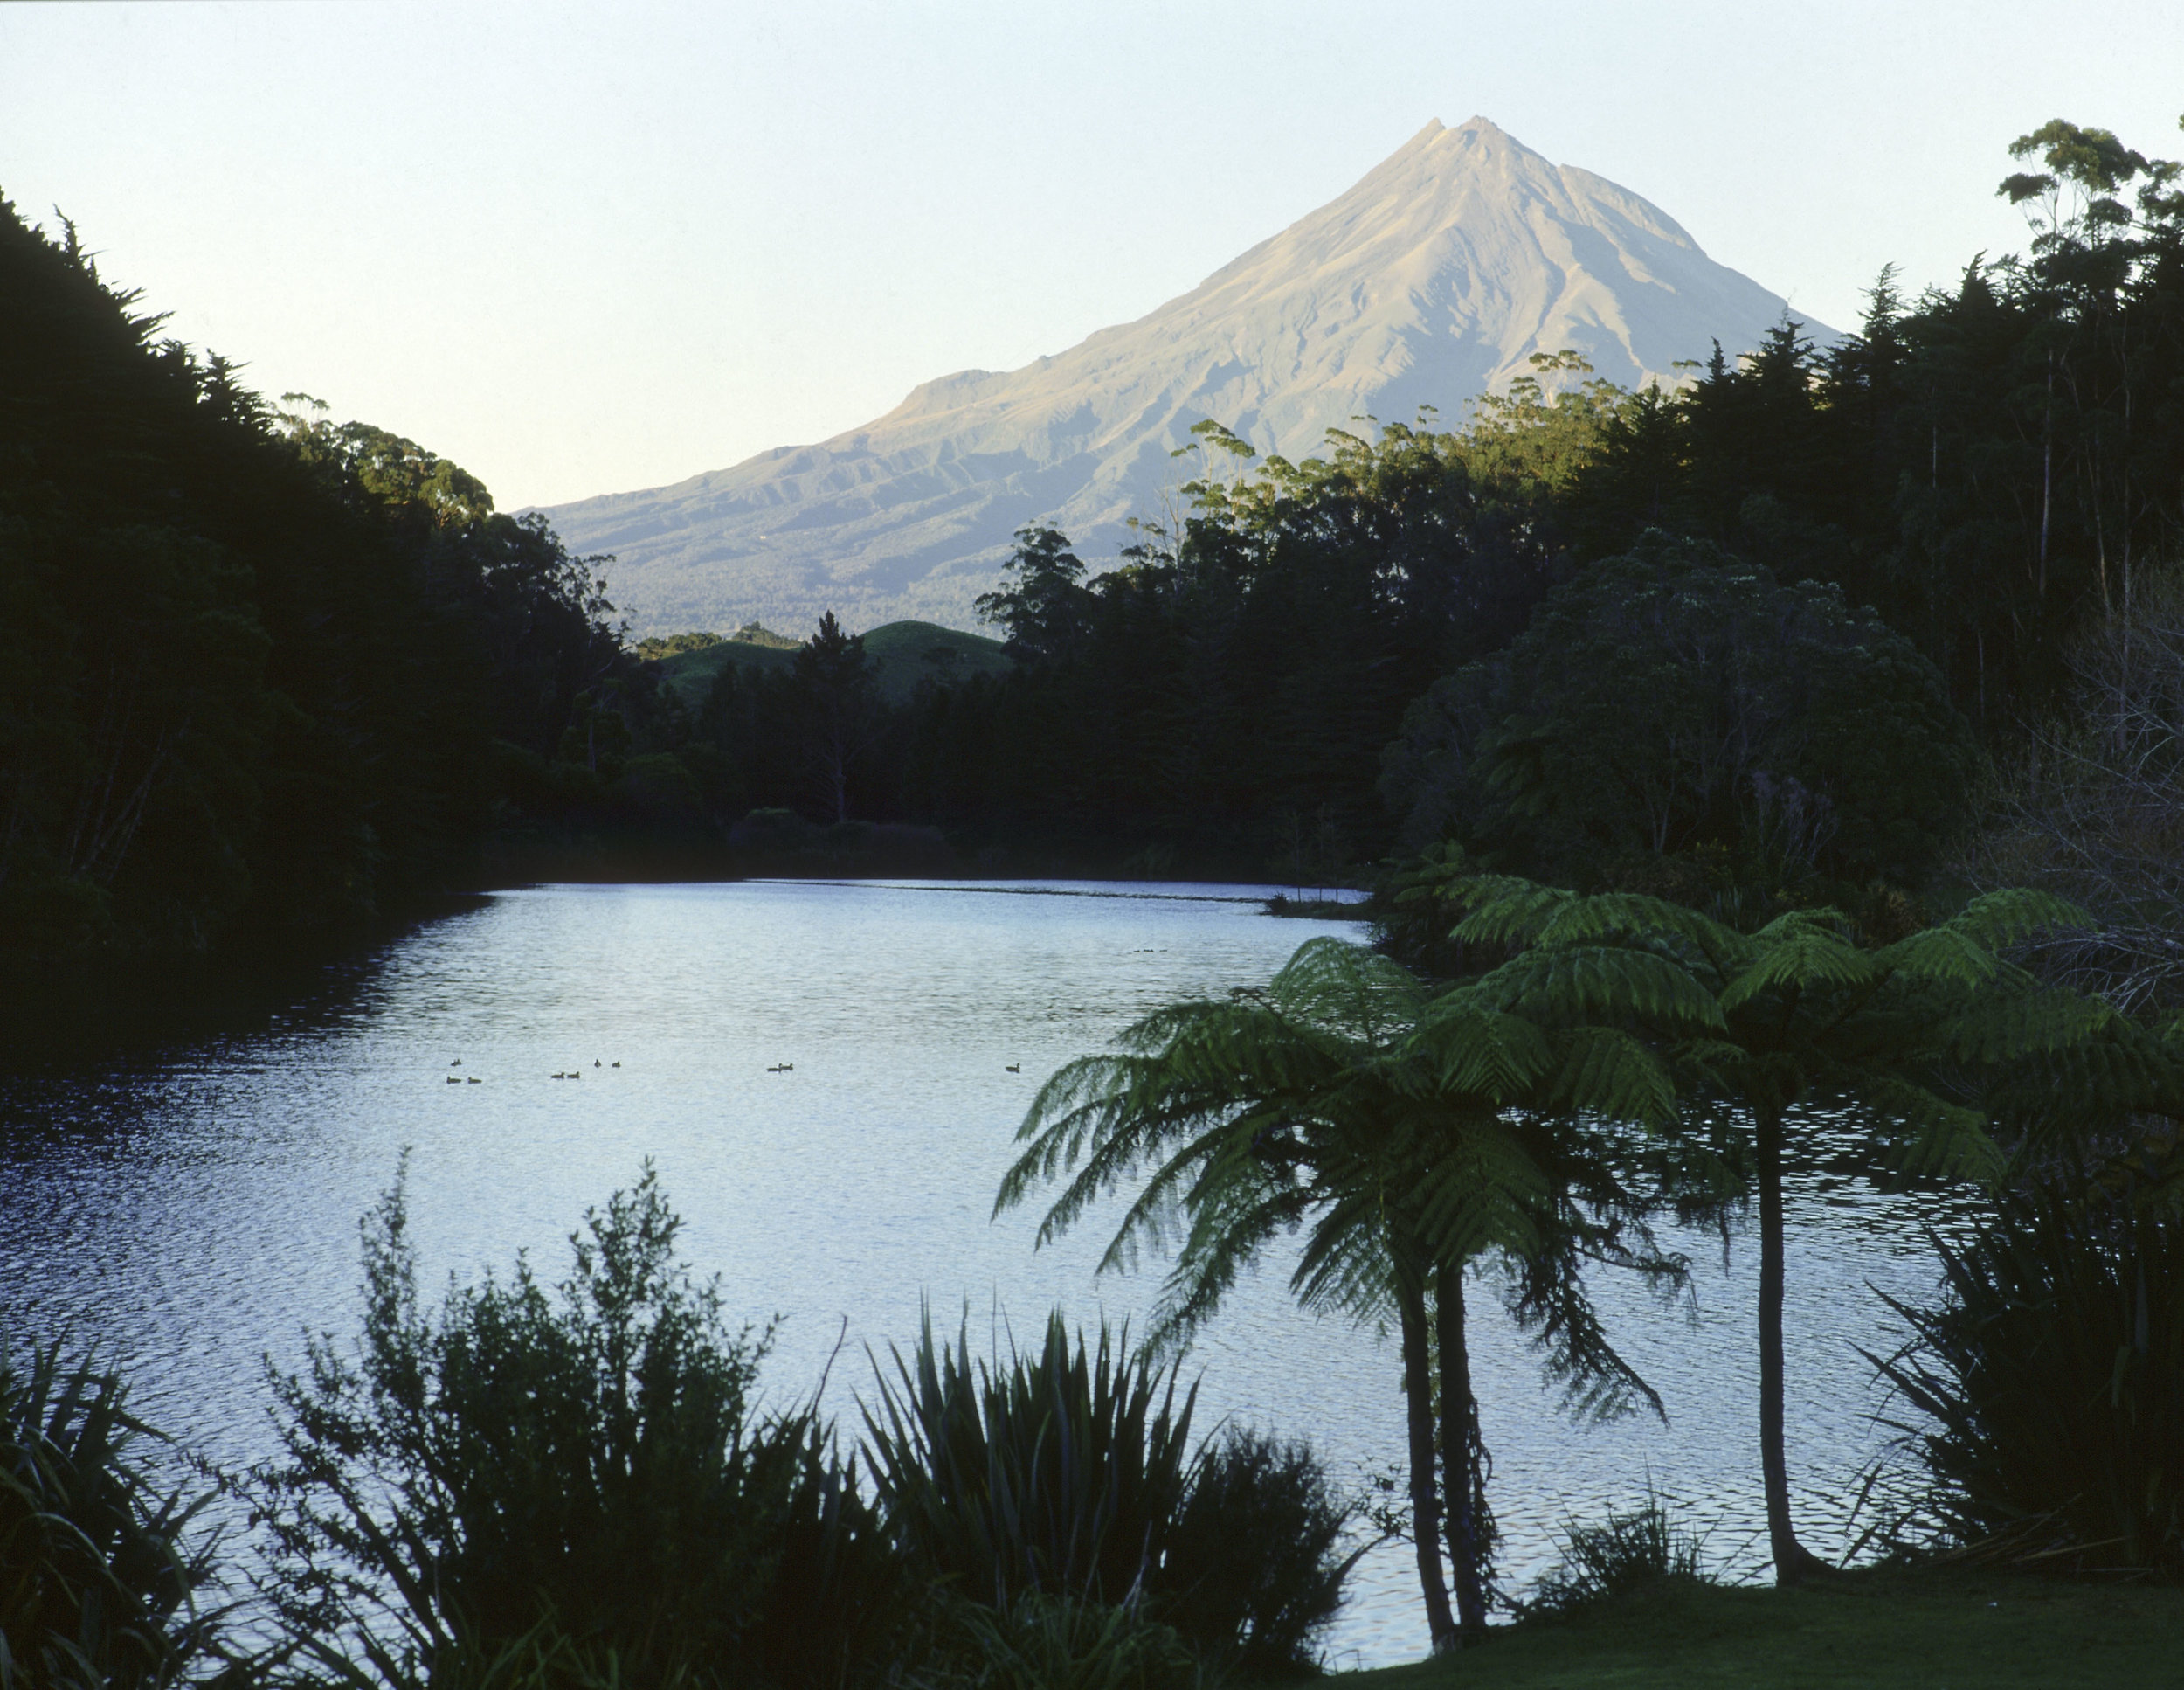 Mount Egmont as seen from Lake Wangamahoe. Normally covered in clouds, the great volcano is the subject of many Maori myths, some of which that tell the story Mt. Egmont's love for the female volcano, Ruapehu. Lake Wangamahoe, North Island.   Inv. #: 55405085 © Werner Forman Archive